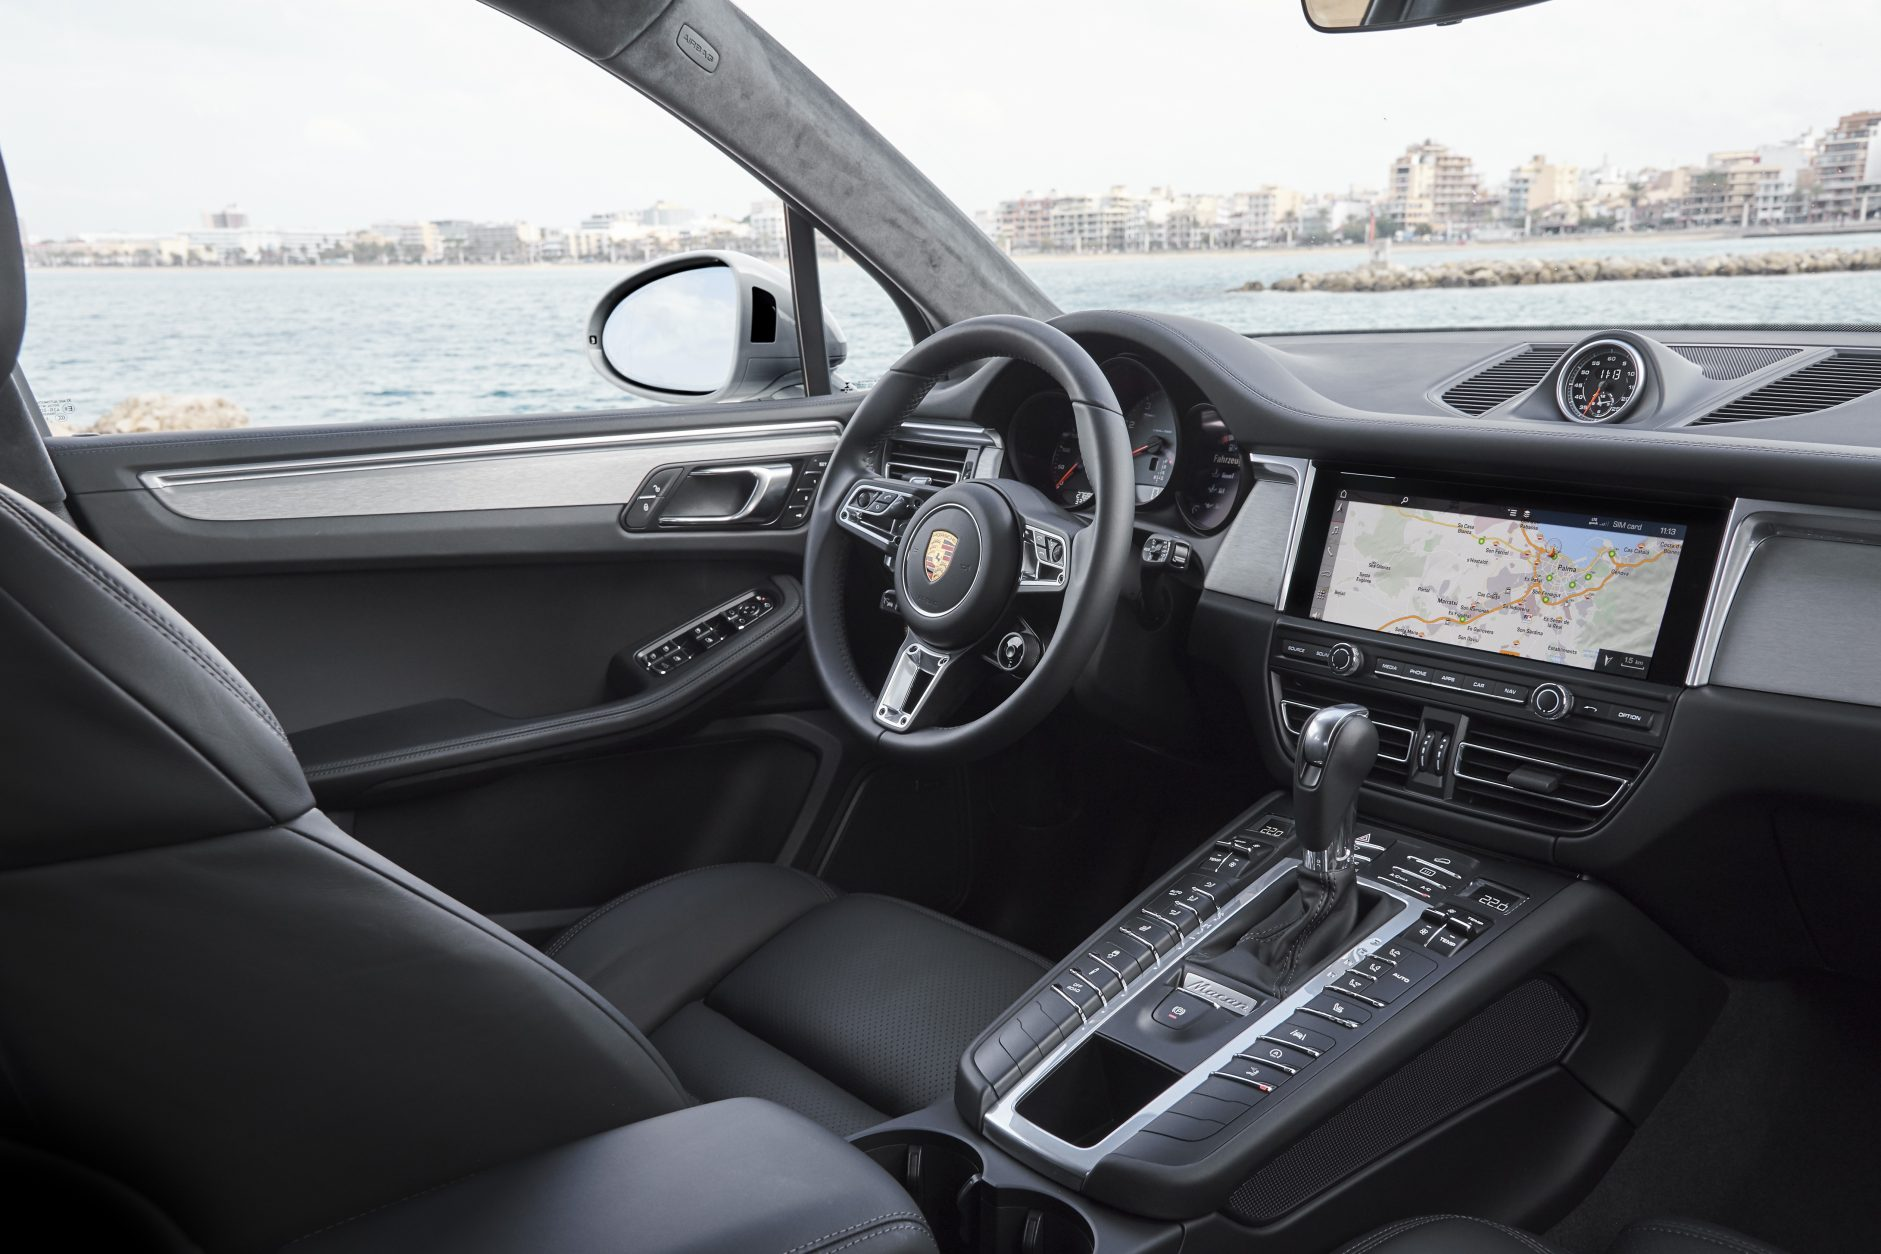 New 2020 Porsche Macan Interior Hd Wallpapers Porsche Macan 2020 Interior 800538 Hd Wallpaper Backgrounds Download